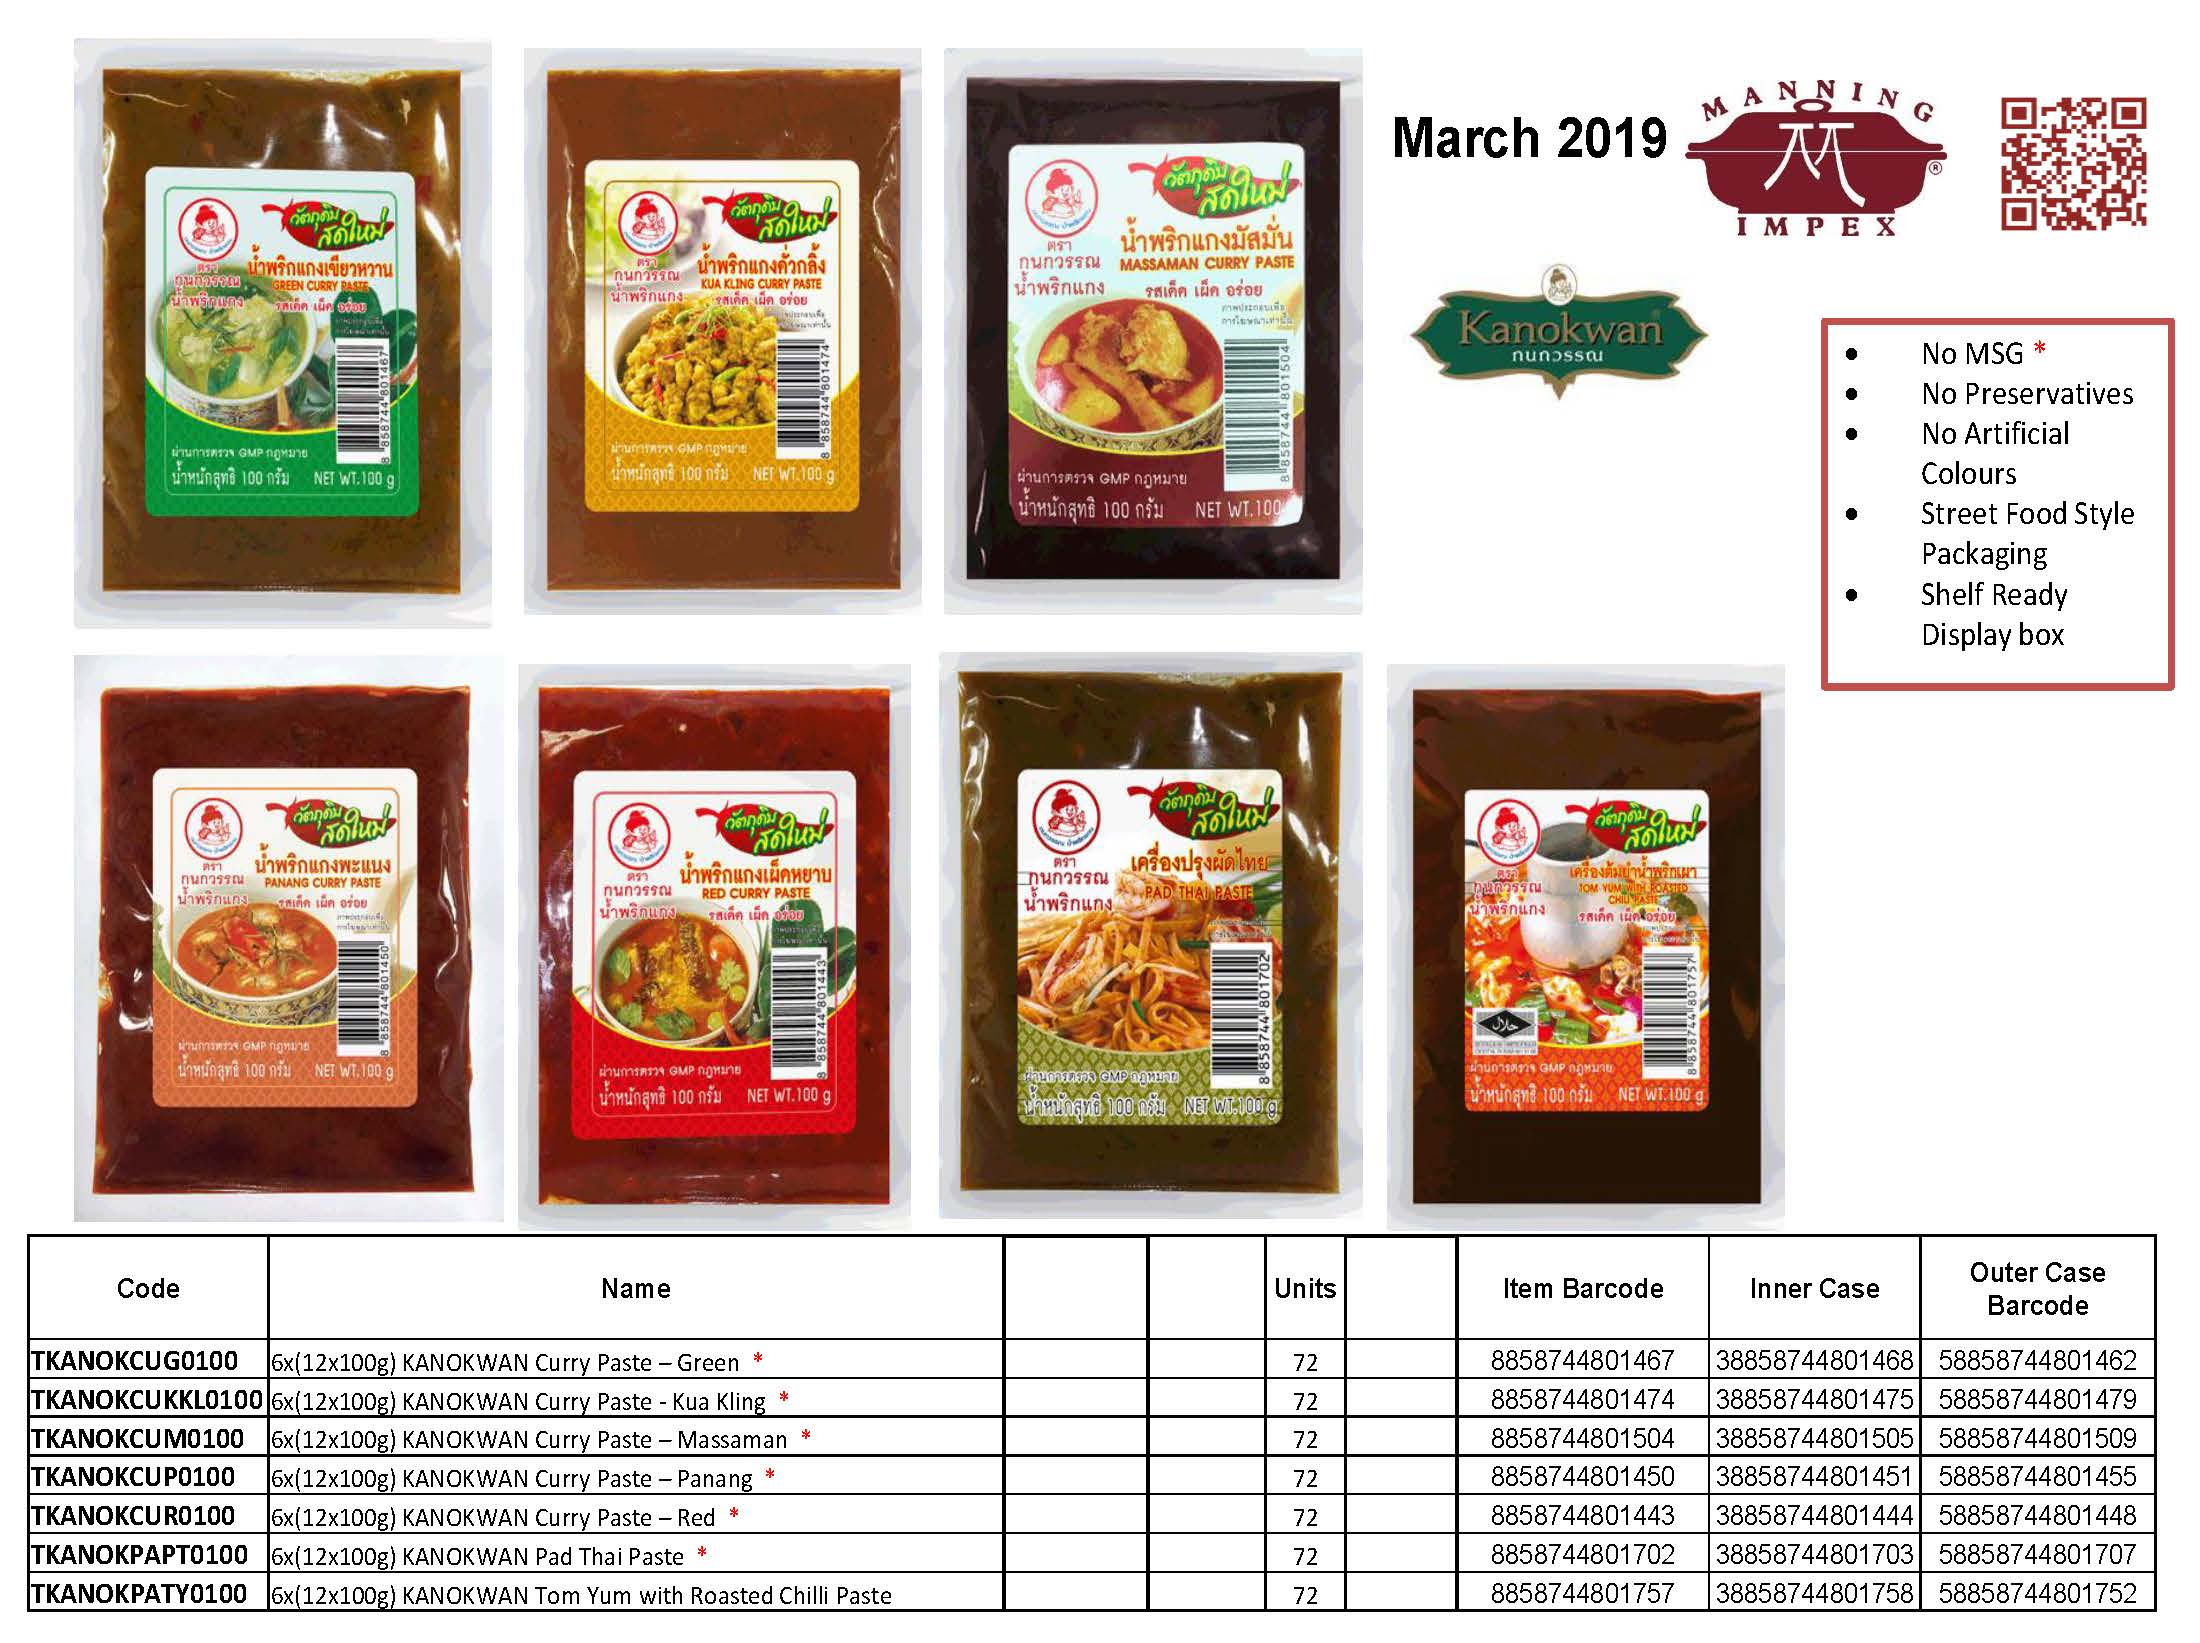 News & Events « Manning Impex « Finest Quality Foods from the Far East